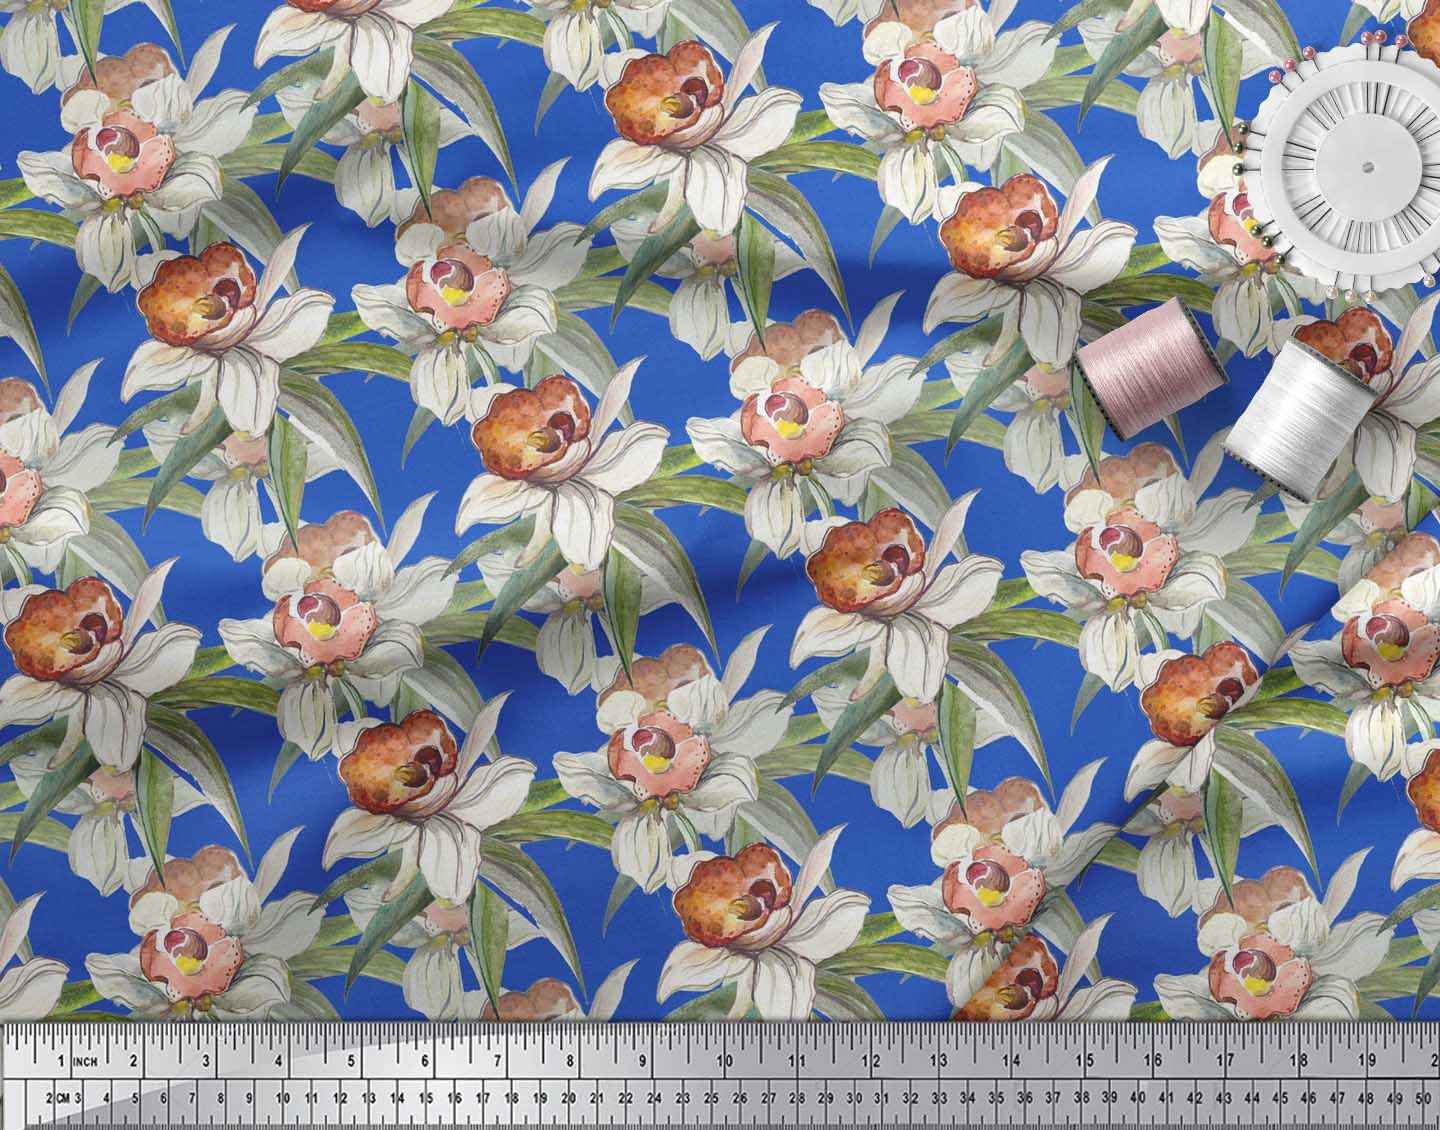 Soimoi-Blue-Cotton-Poplin-Fabric-Leaves-amp-Daffodil-Floral-Print-PgX thumbnail 3